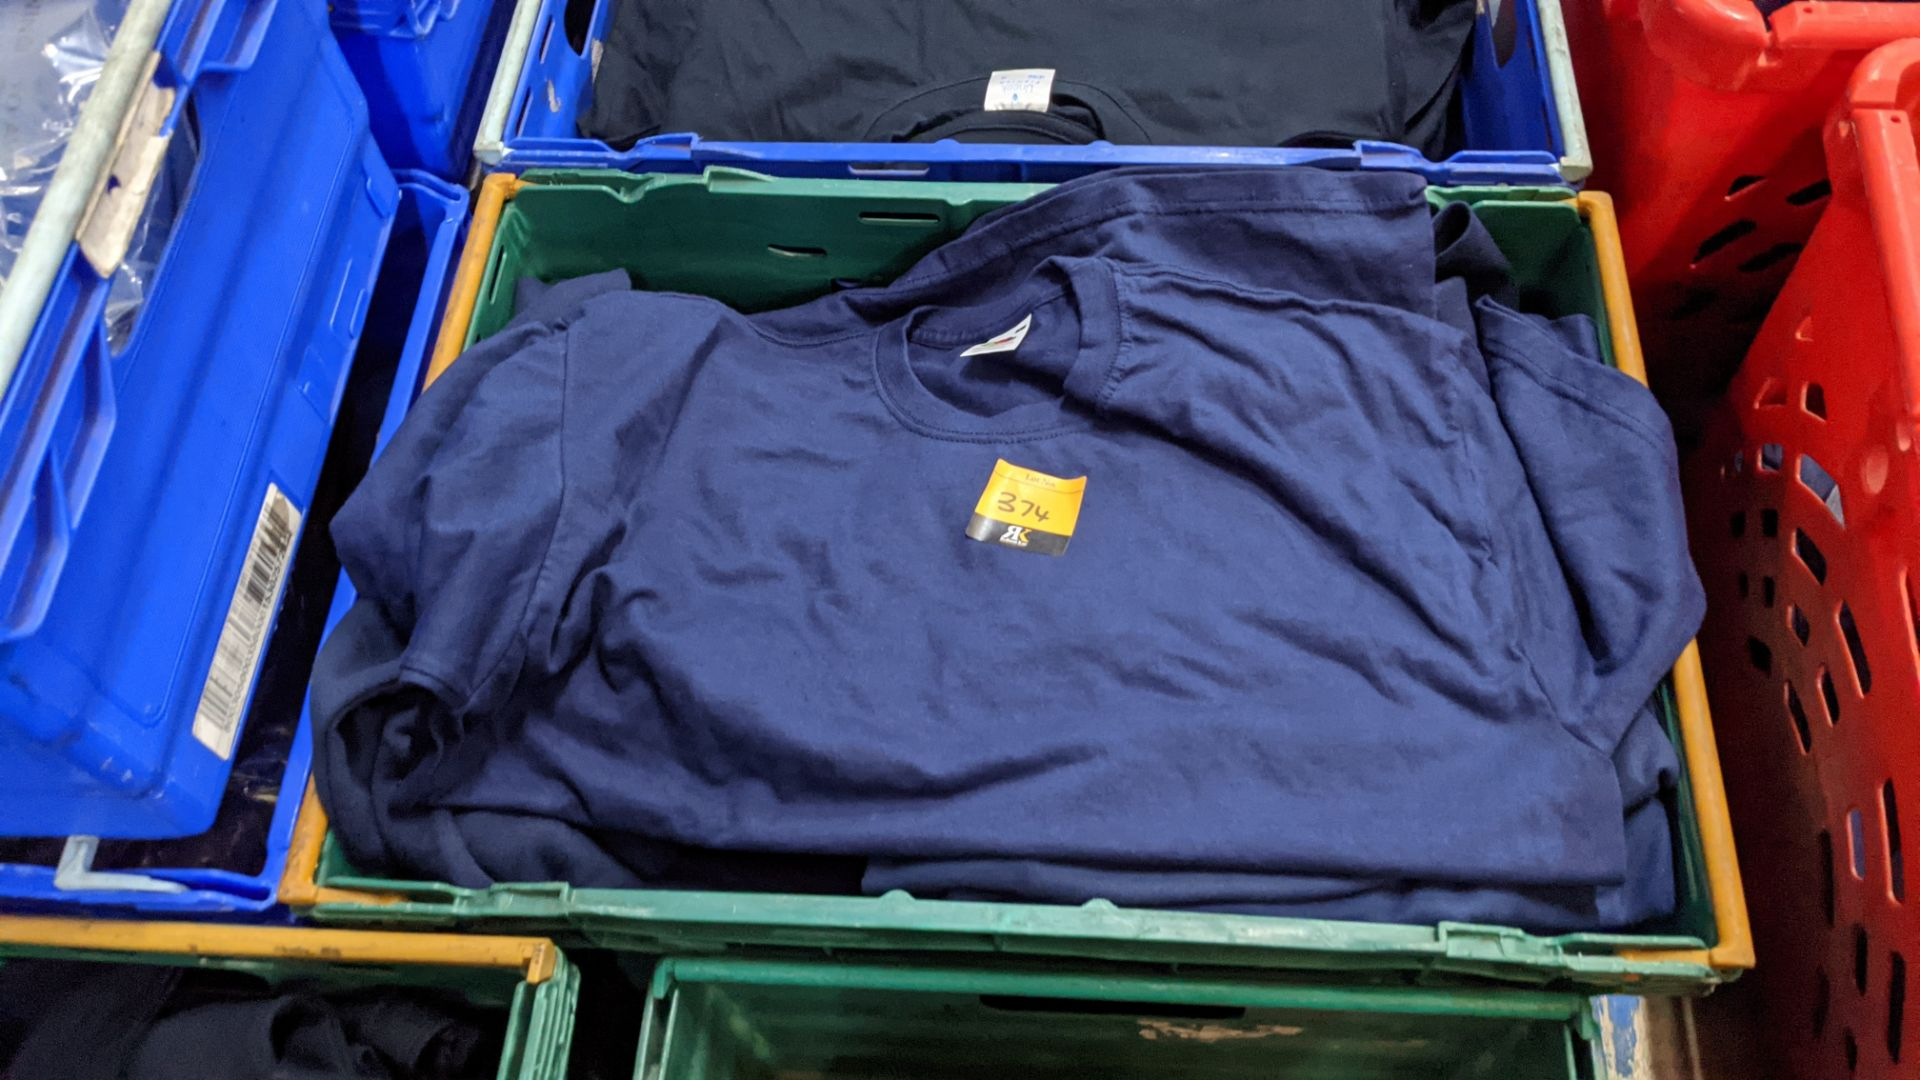 Approx 20 off assorted blue Fruit of the Loom tops comprising sweatshirts, polo shirts & t-shirts - Image 2 of 4